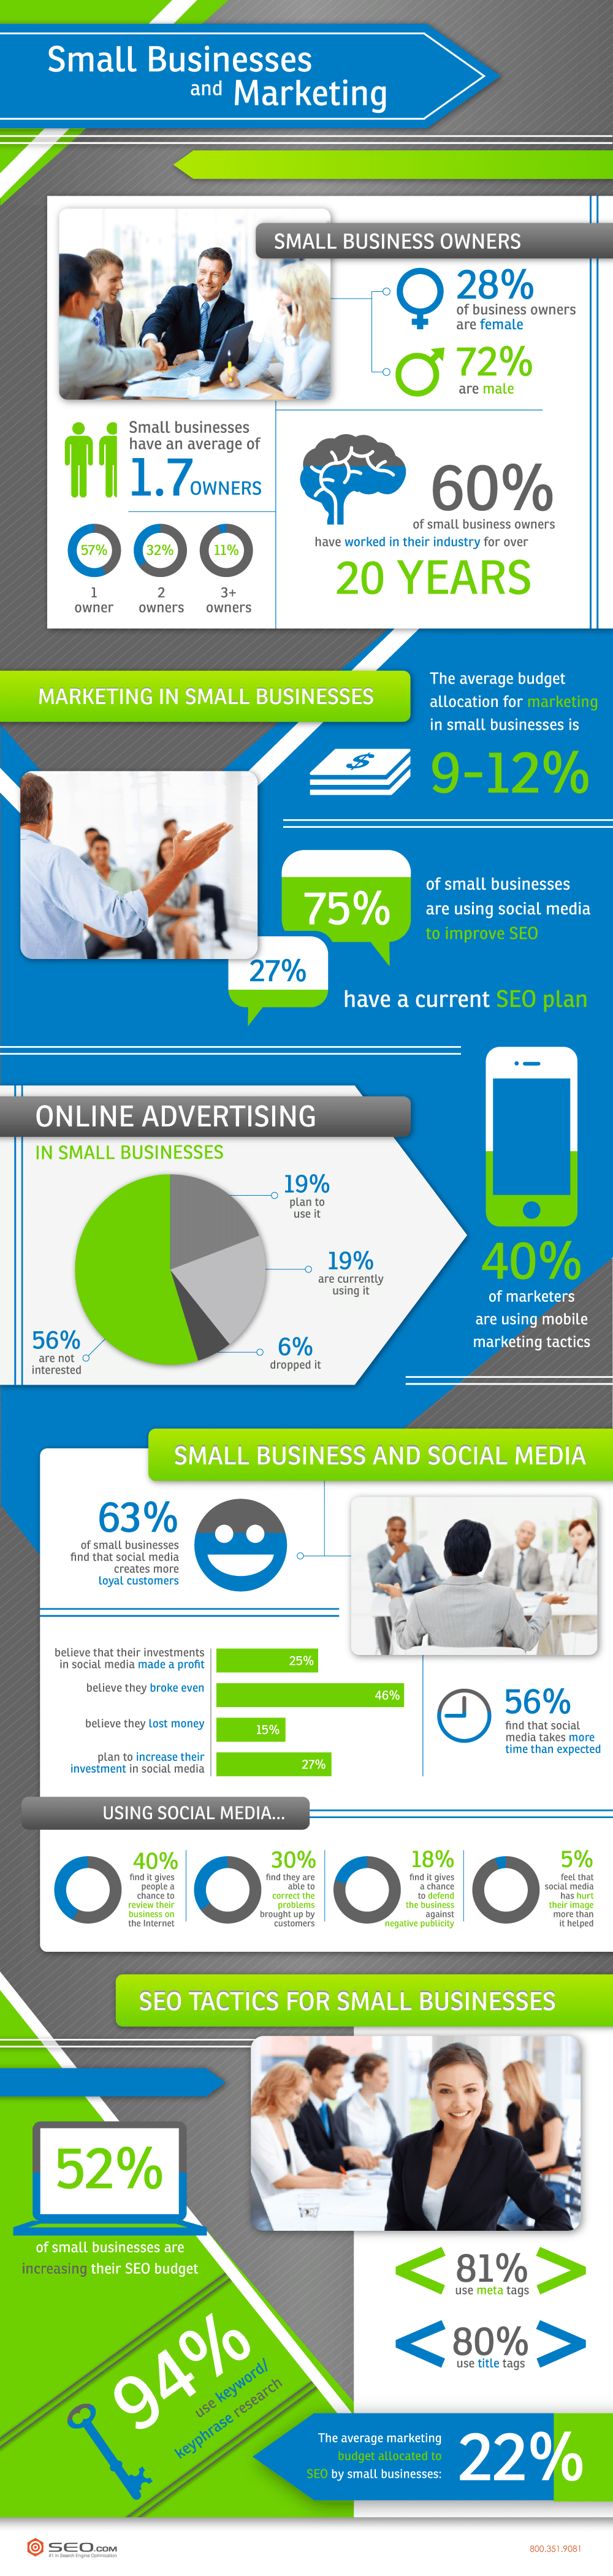 Fashion Small Business Marketing infographic